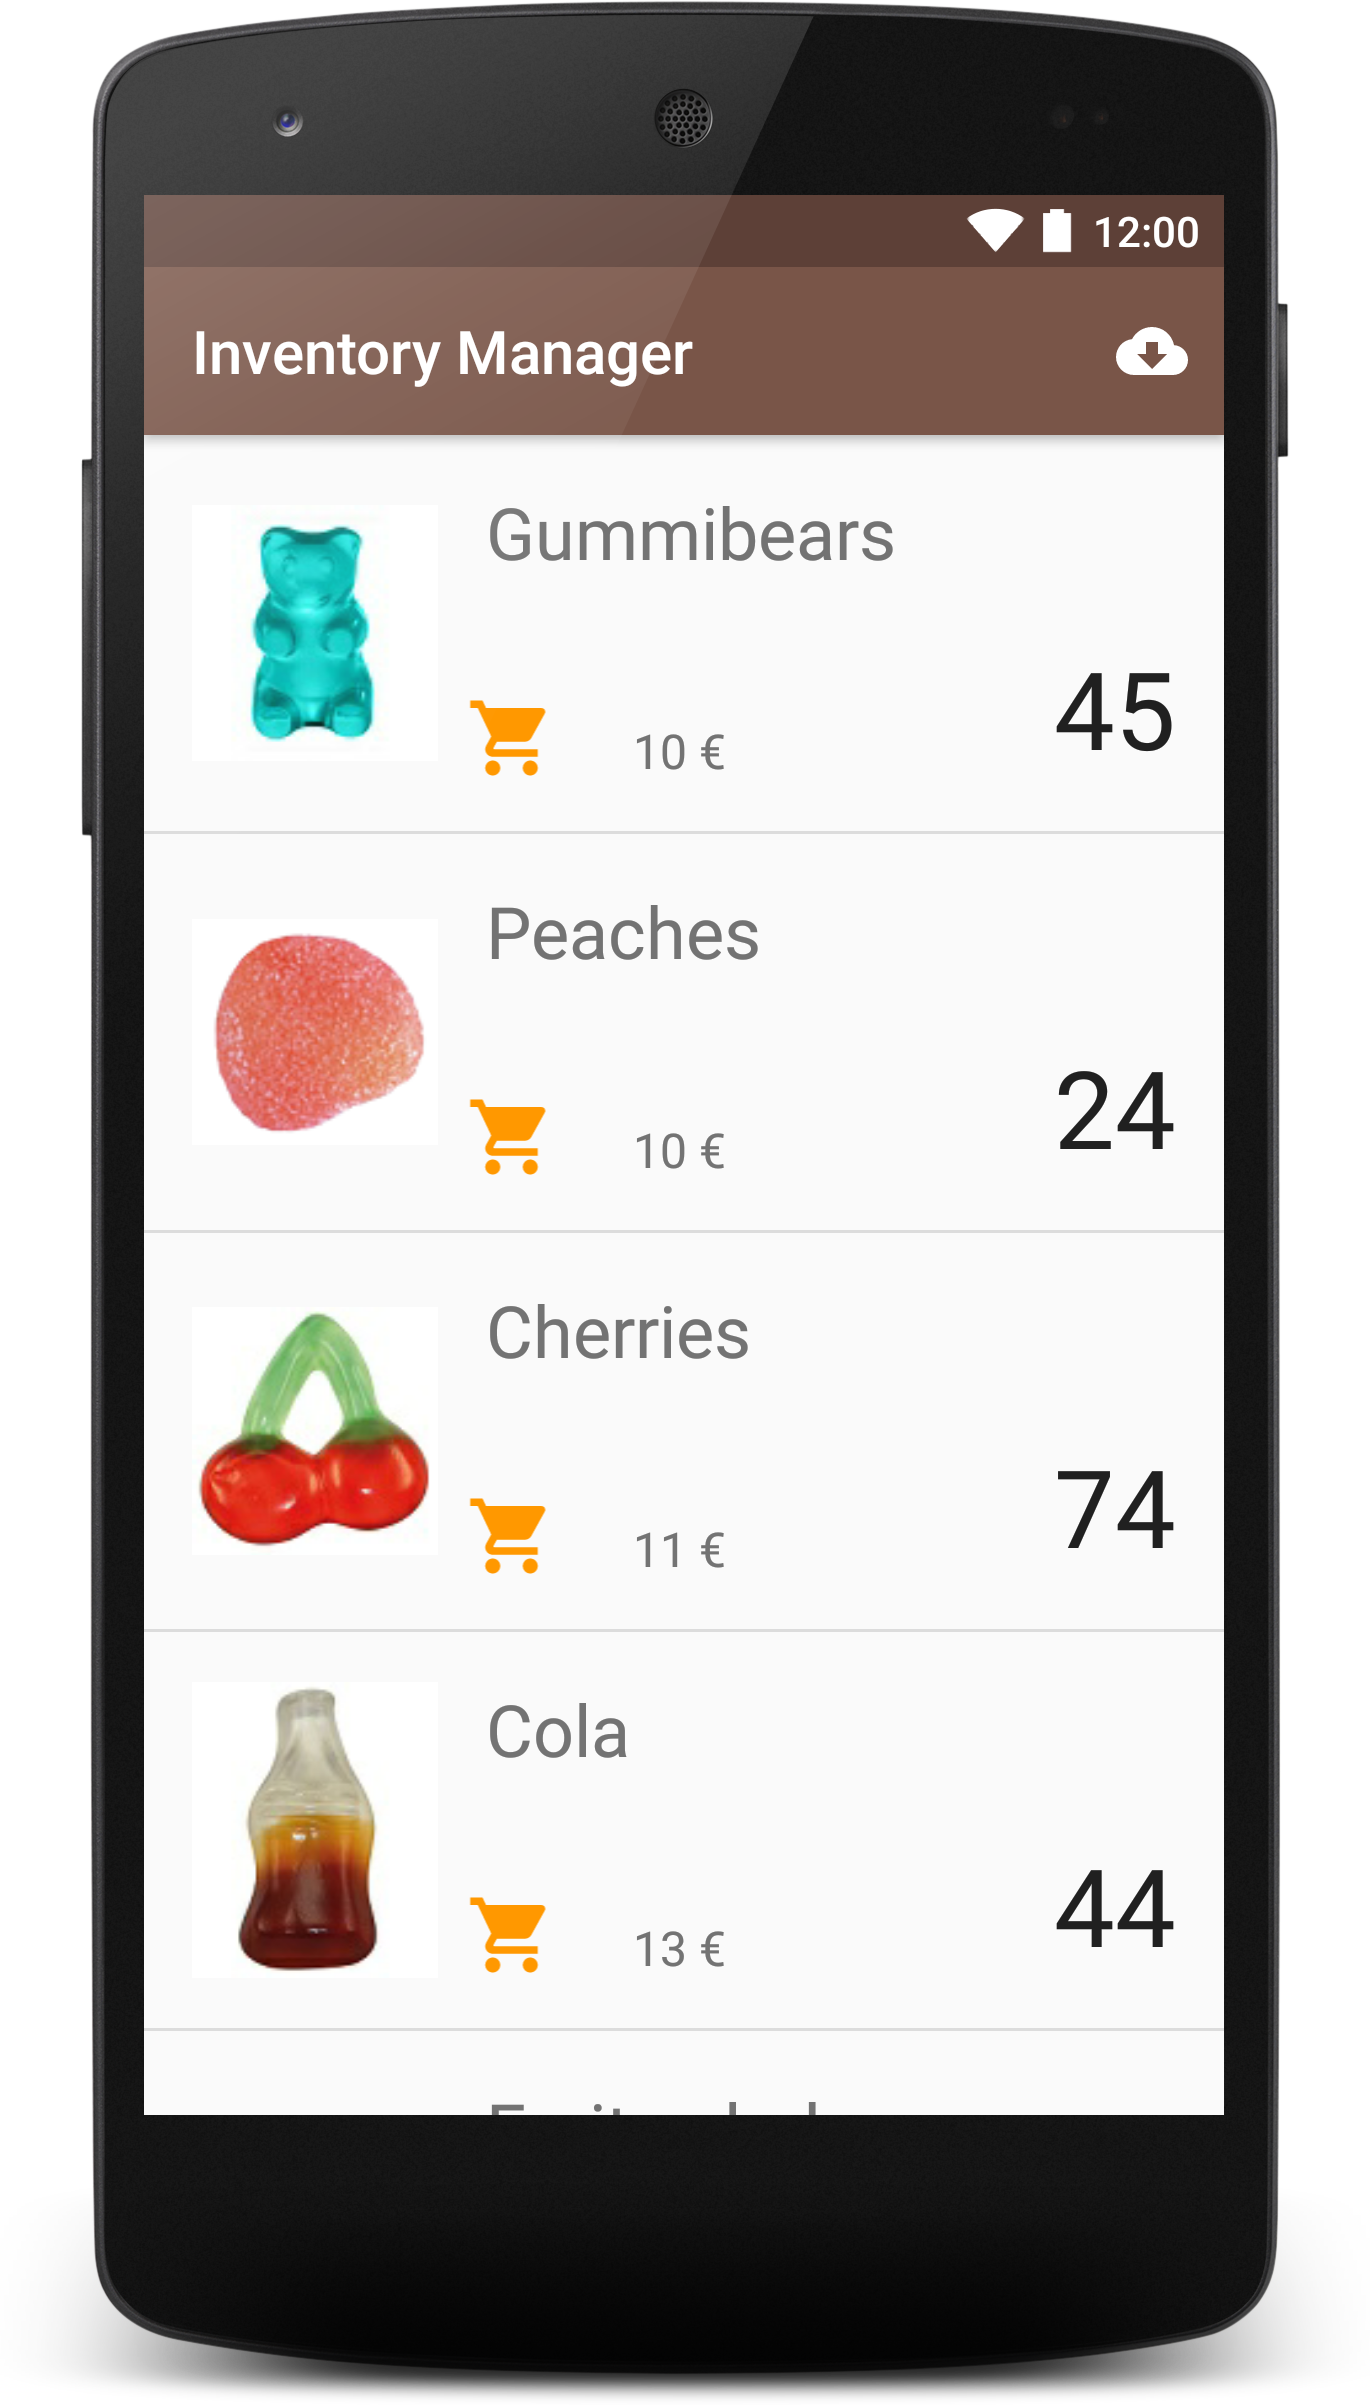 GitHub - laramartin/android_inventory: Inventory app project for